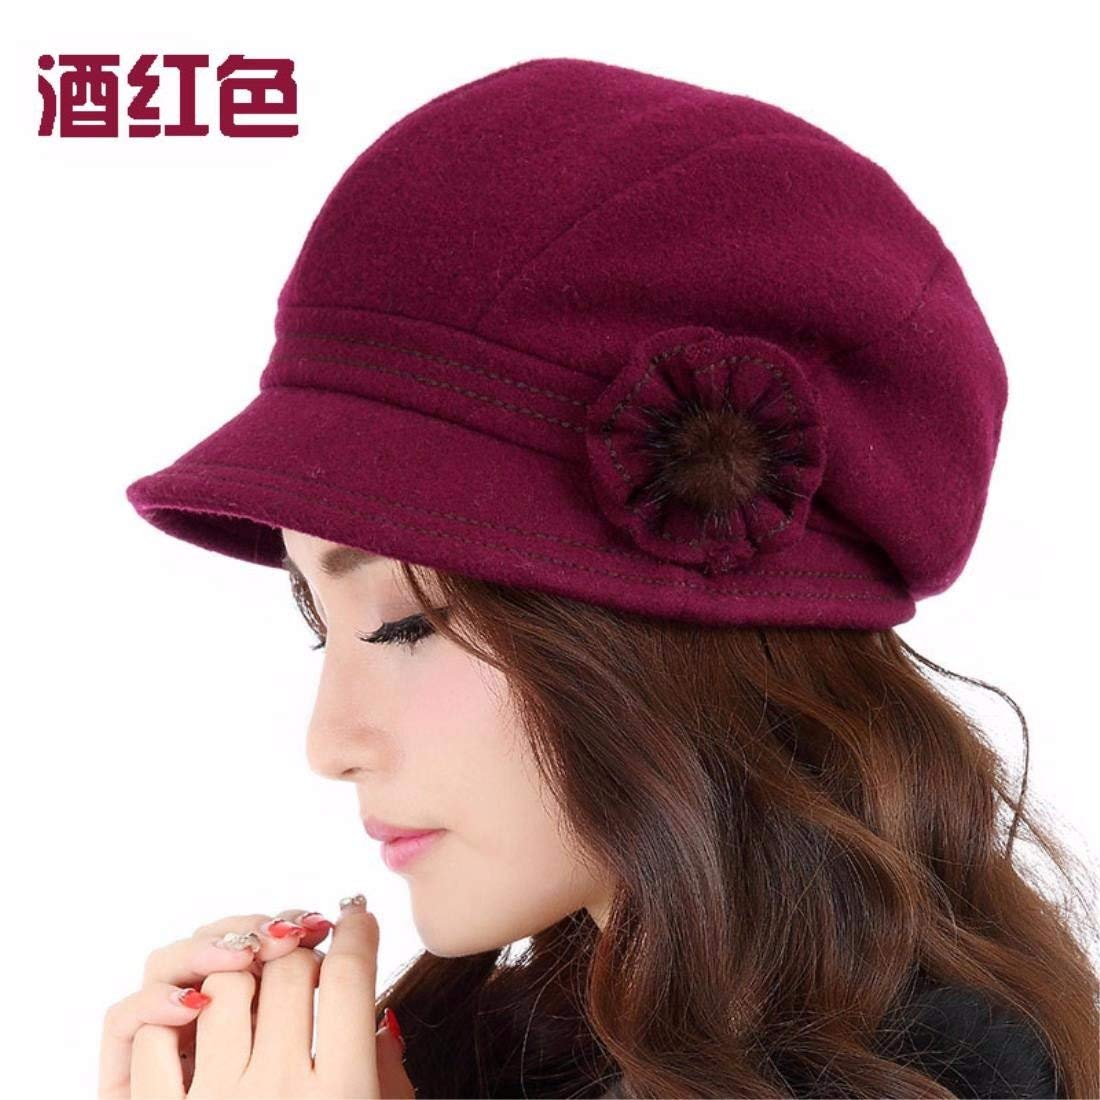 GHANDG Beach Hat Winter Thick Warm Winter and Autumn Cap Beret Female Leisure Cap Summer Sun Hat (Color : The Red, Size : L (58-60CM))